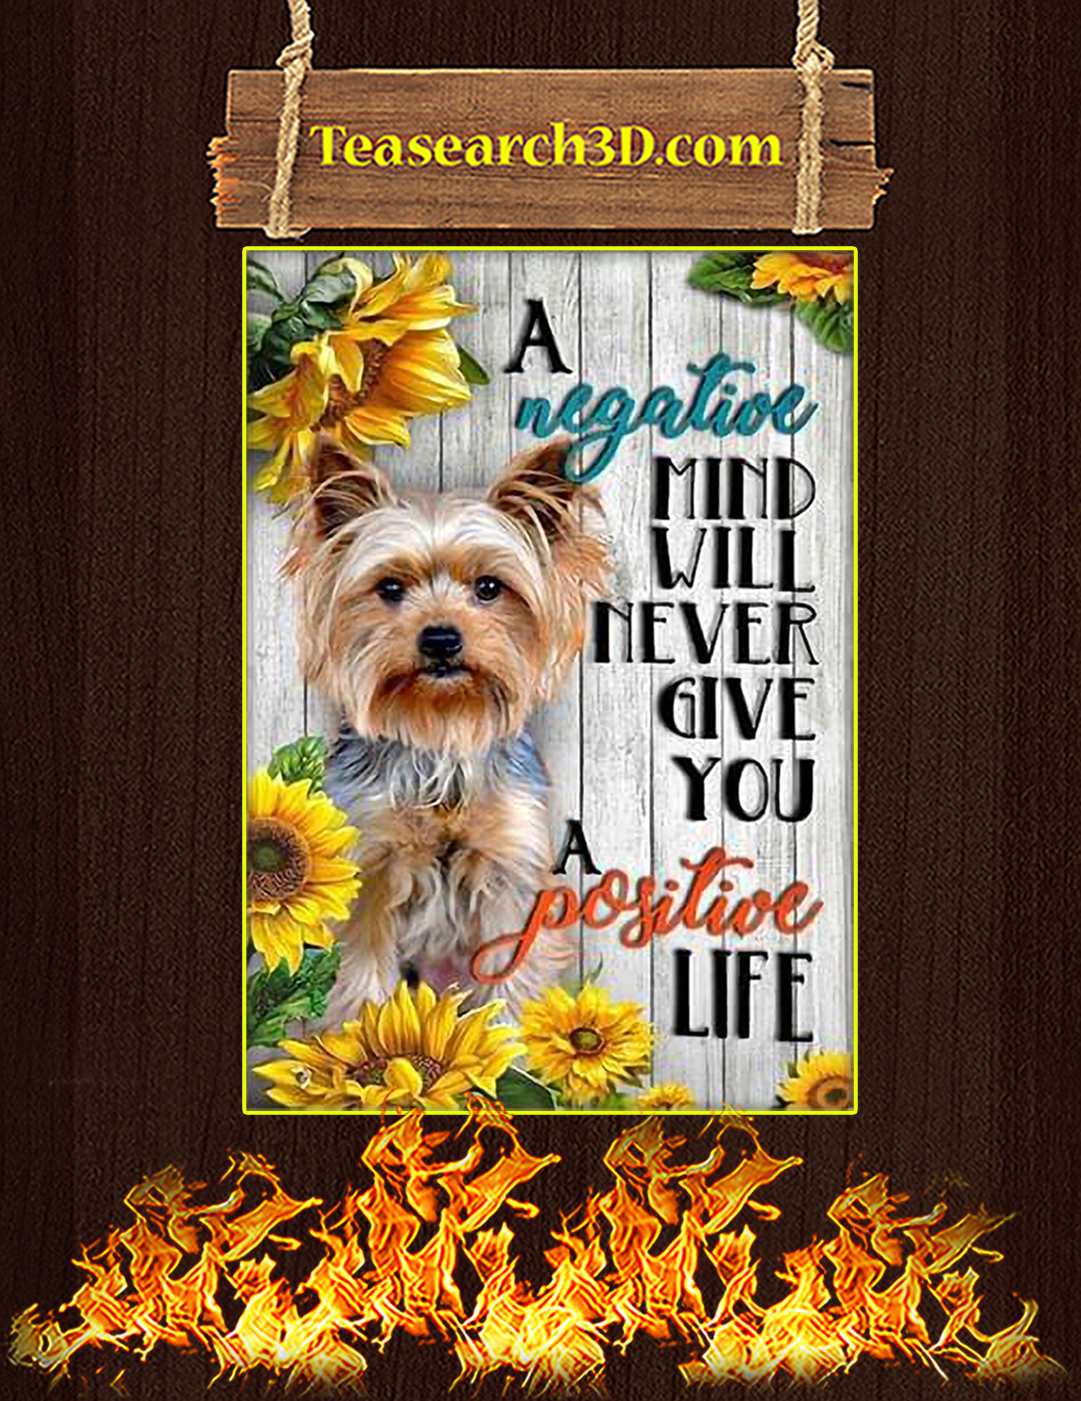 Yorkshire A negative mind will never give you a positive life poster A2